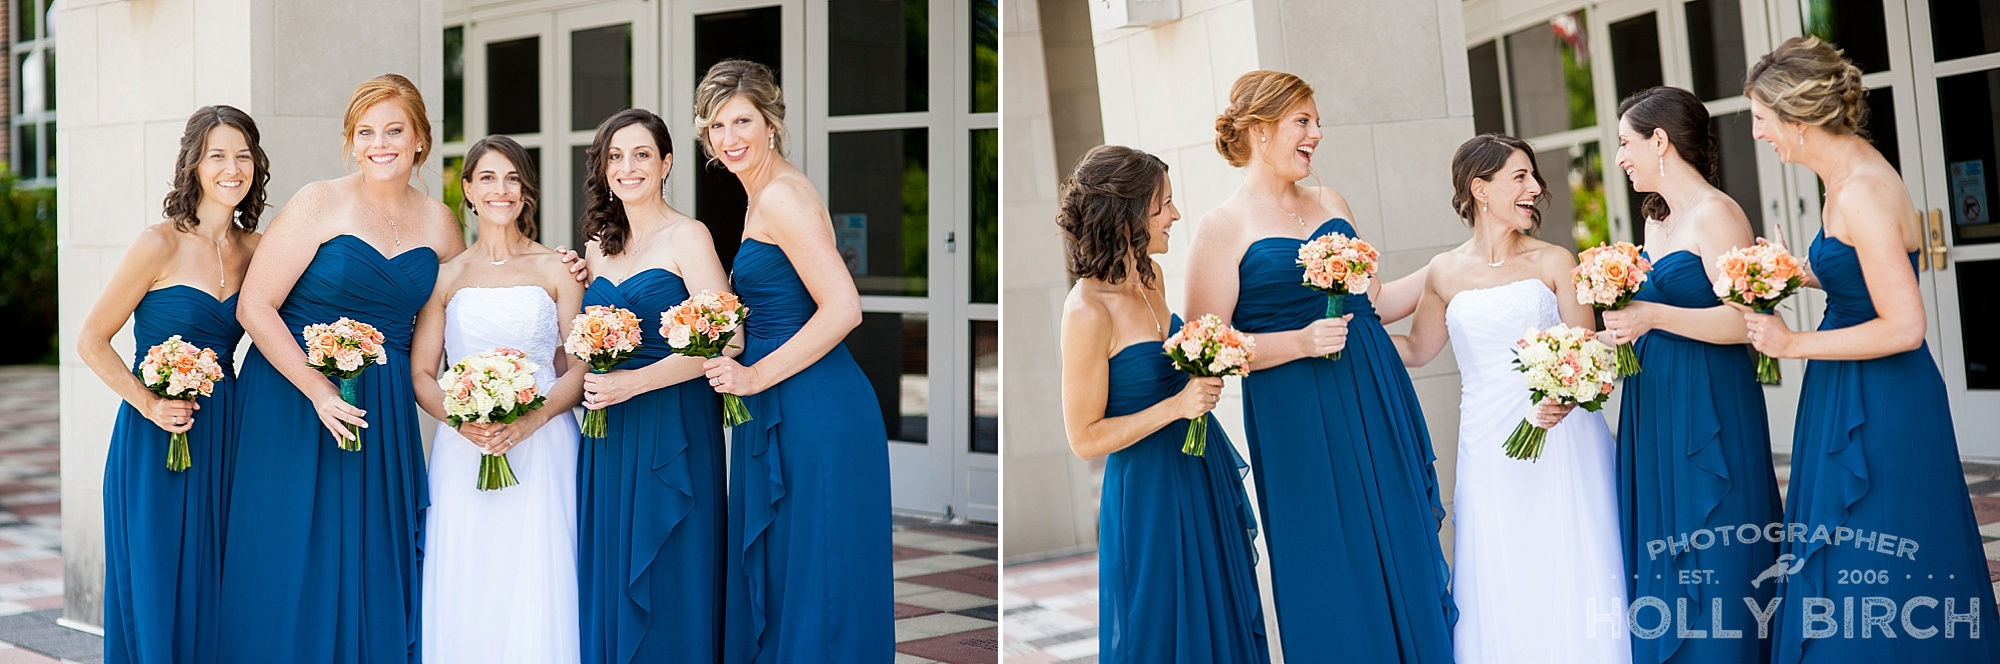 bridesmaids in peacock blue